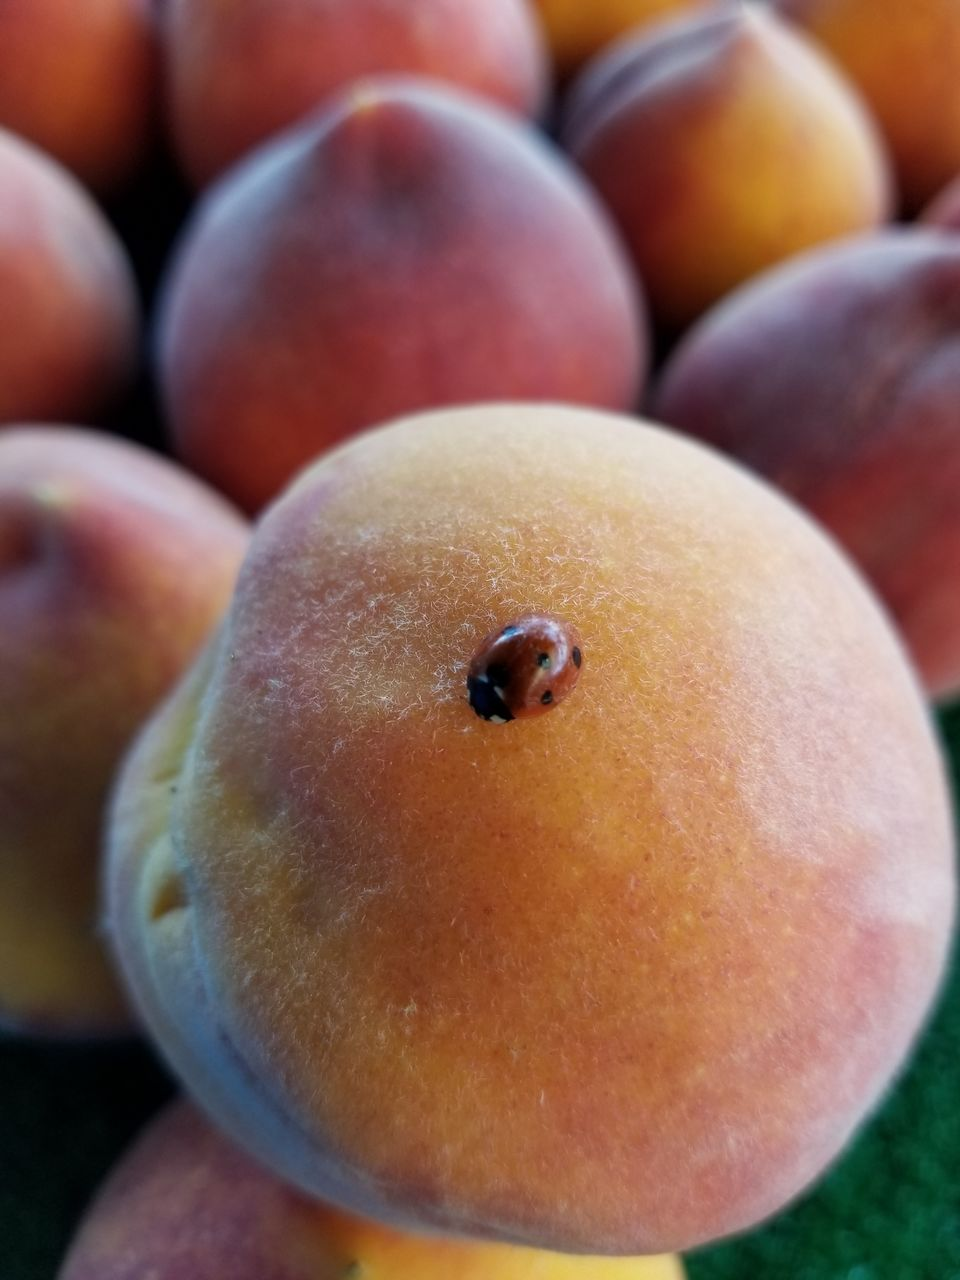 food and drink, food, fruit, healthy eating, close-up, freshness, focus on foreground, no people, day, indoors, ready-to-eat